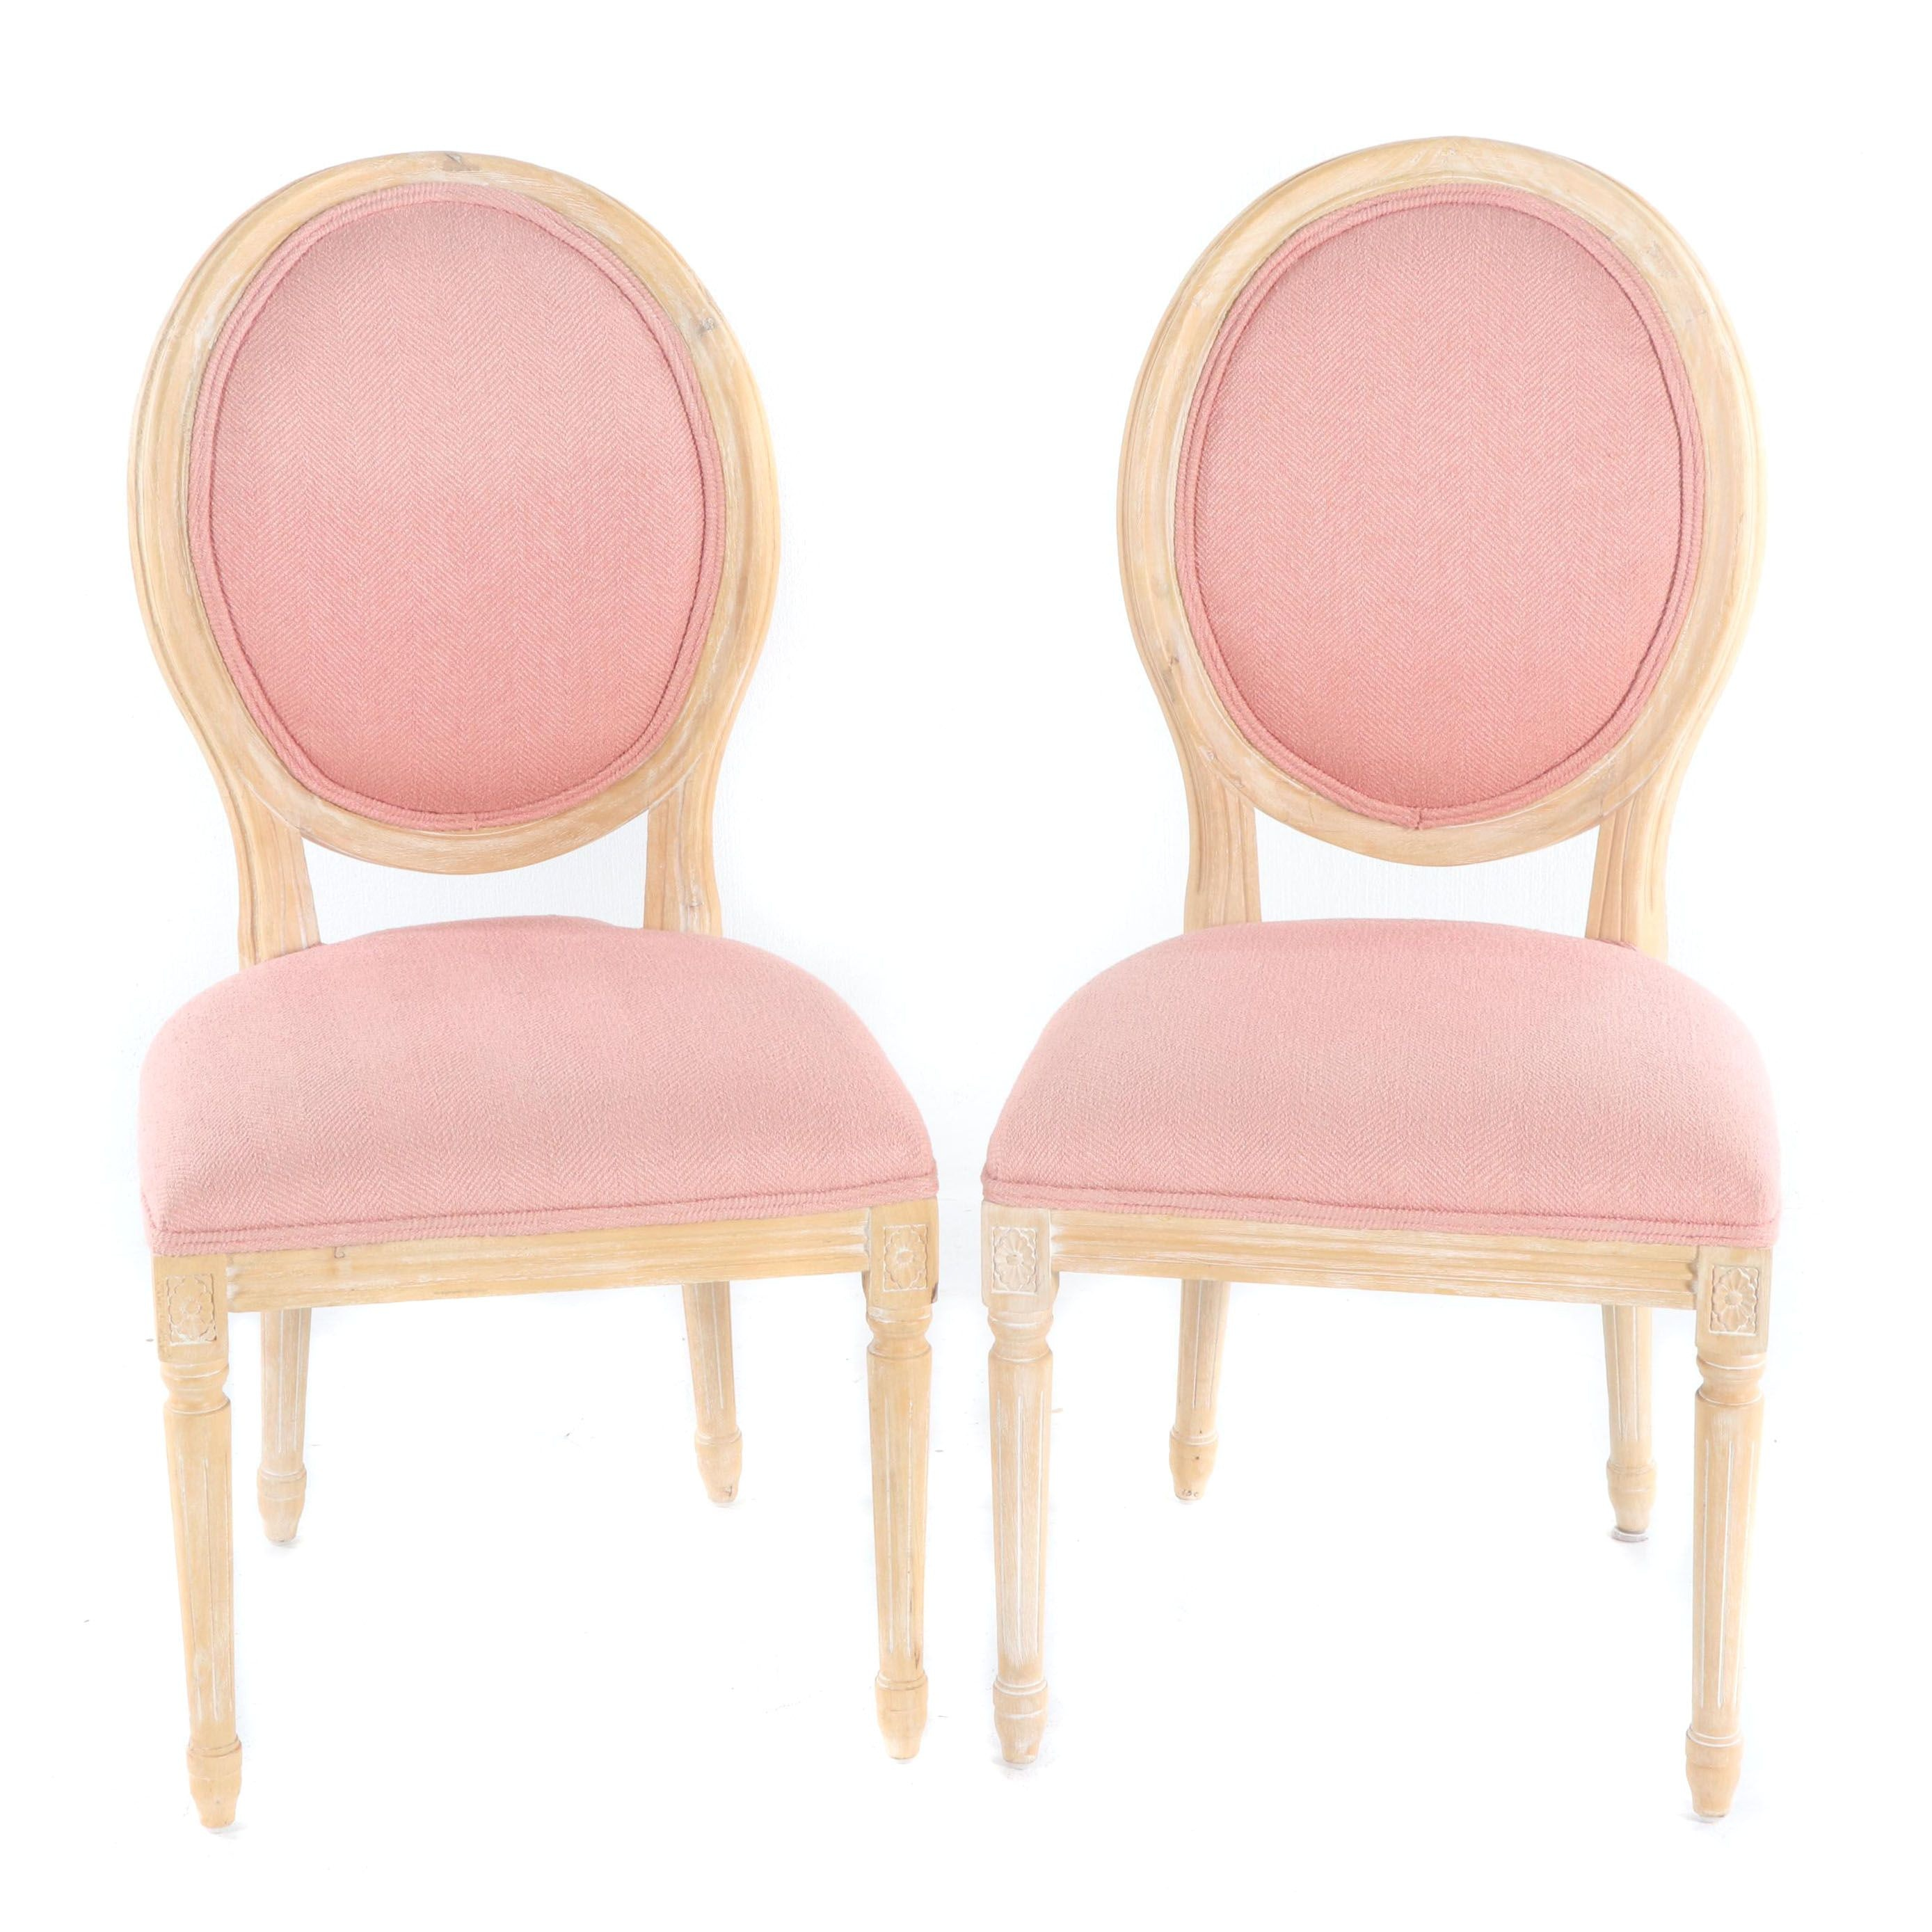 Louis XVI Style Upholstered Oval Back Side Chairs by Permaisuri, 21st Century